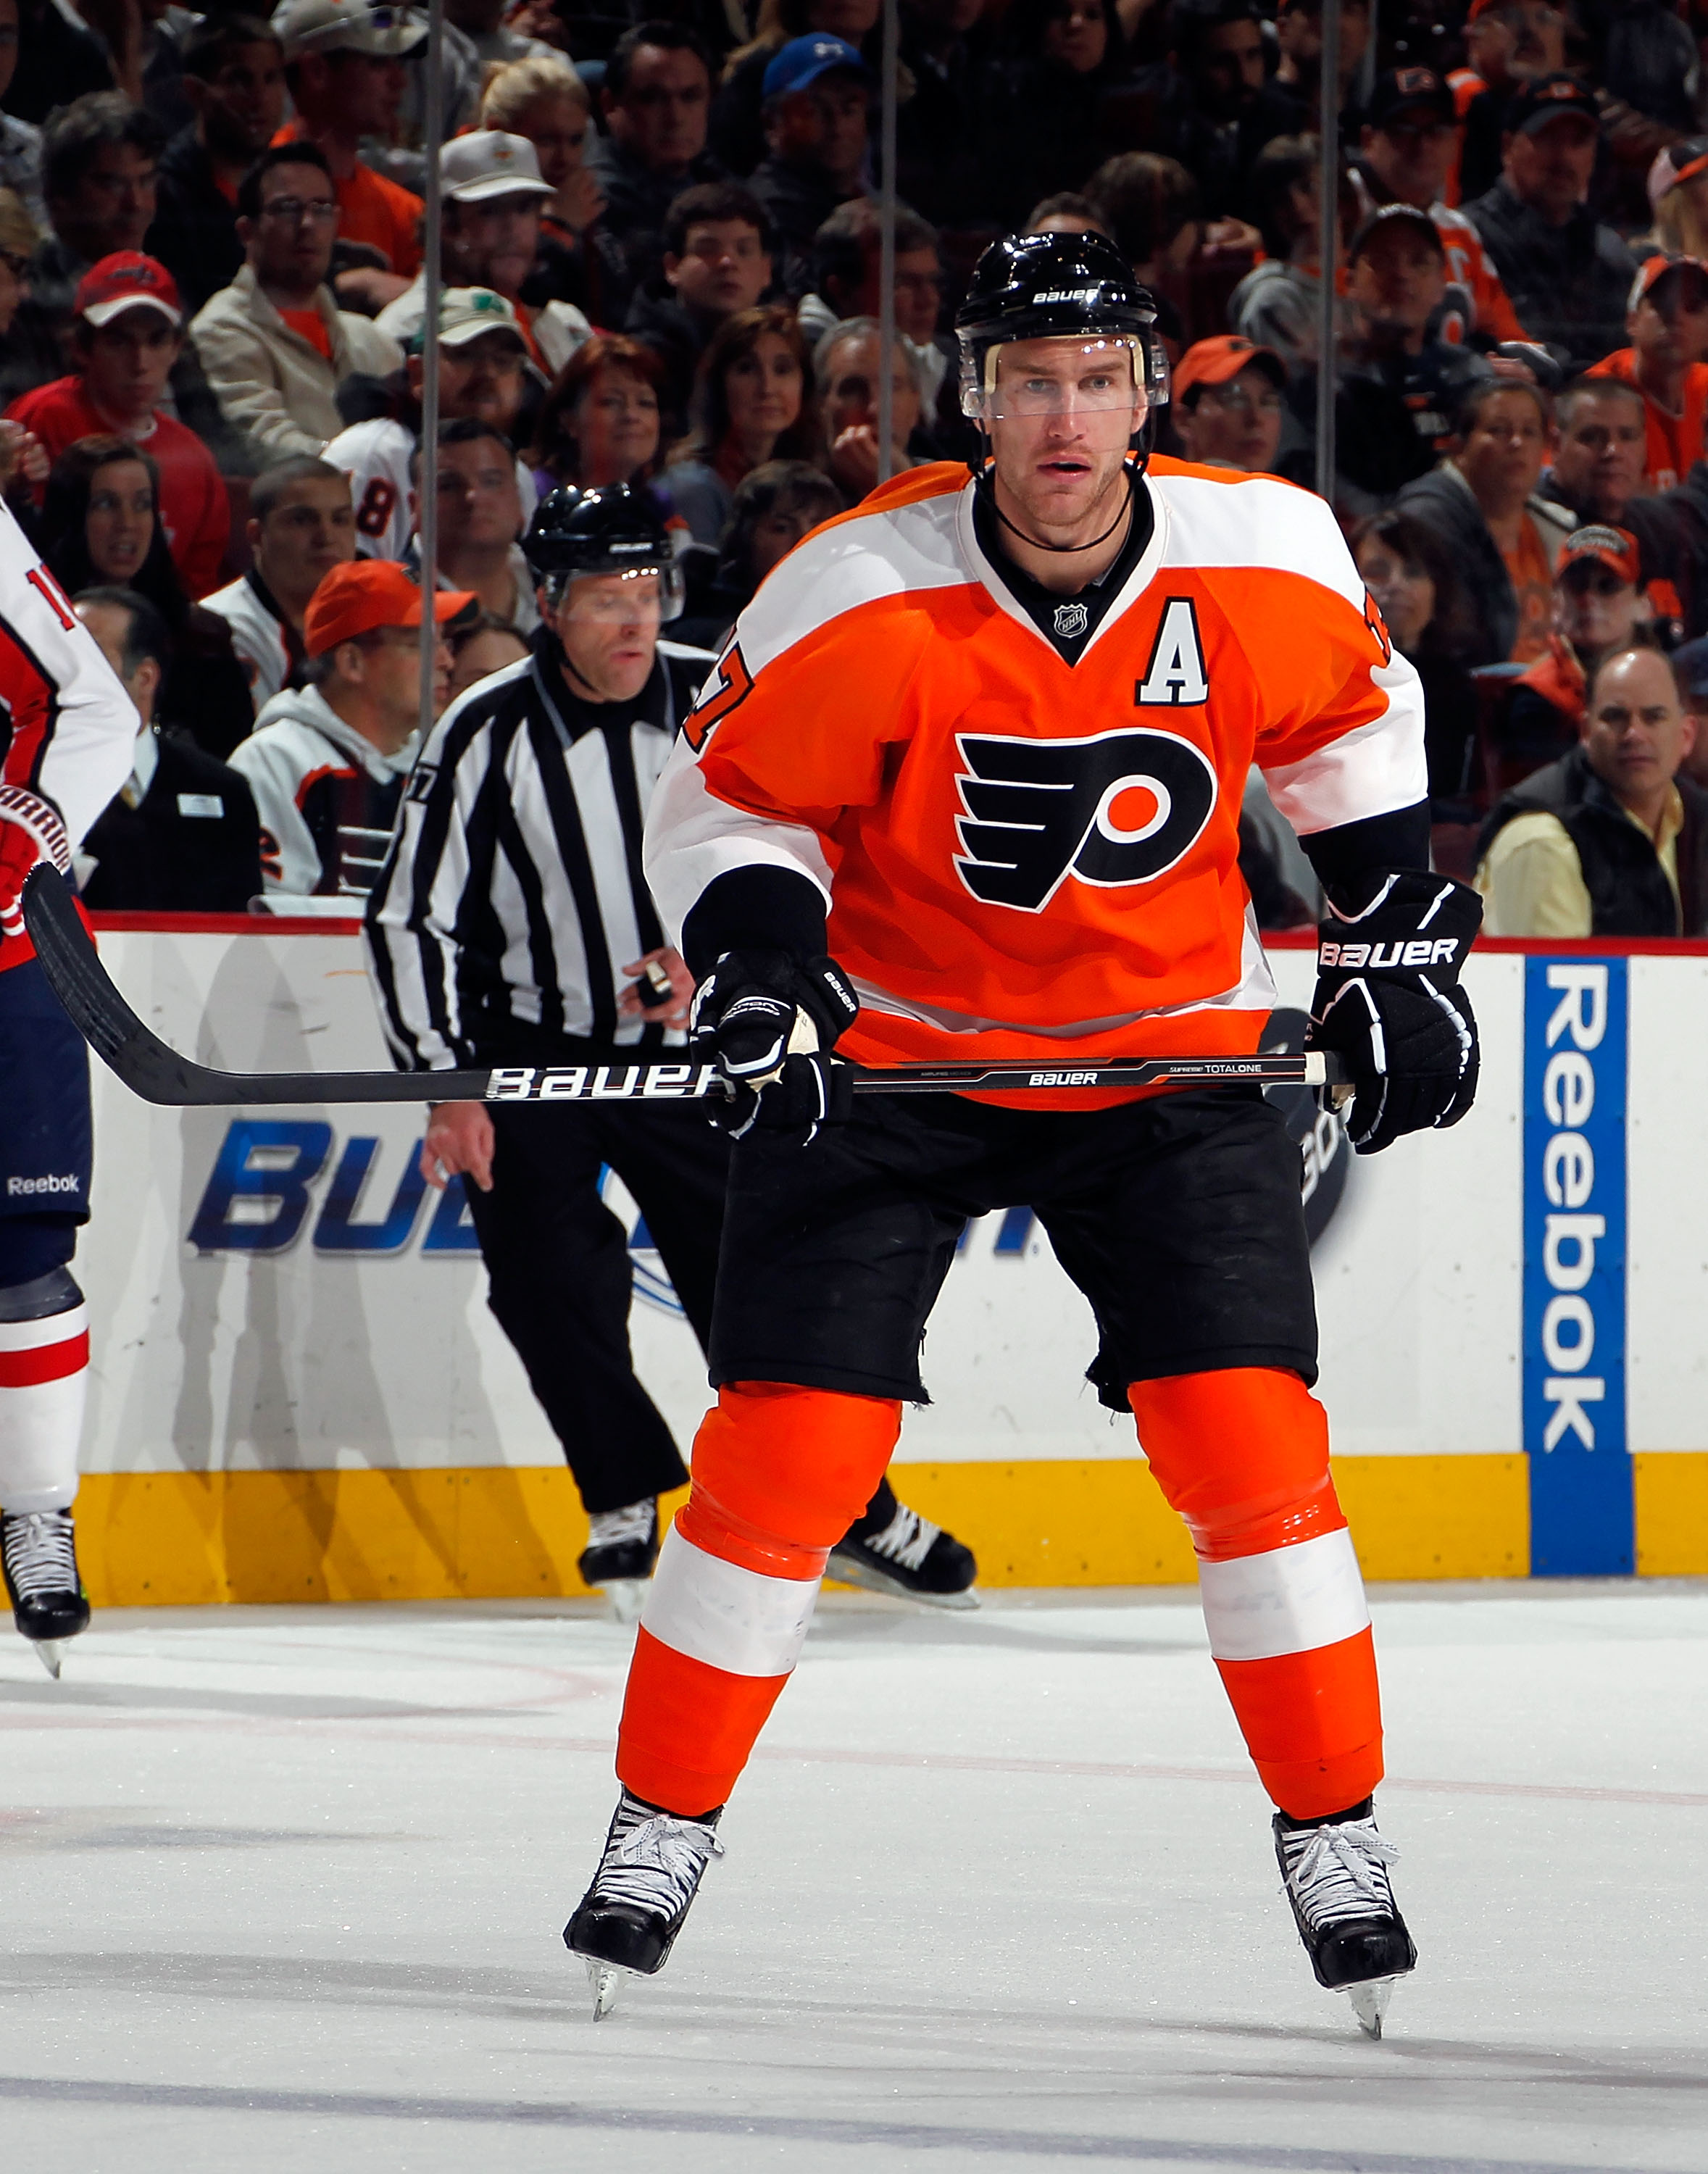 PHILADELPHIA, PA - MARCH 22:  Jeff Carter #17 of the Philadelphia Flyers skates during an NHL hockey game against the Washington Capitals at the Wells Fargo Center on March 22, 2011 in Philadelphia, Pennsylvania.  (Photo by Paul Bereswill/Getty Images)